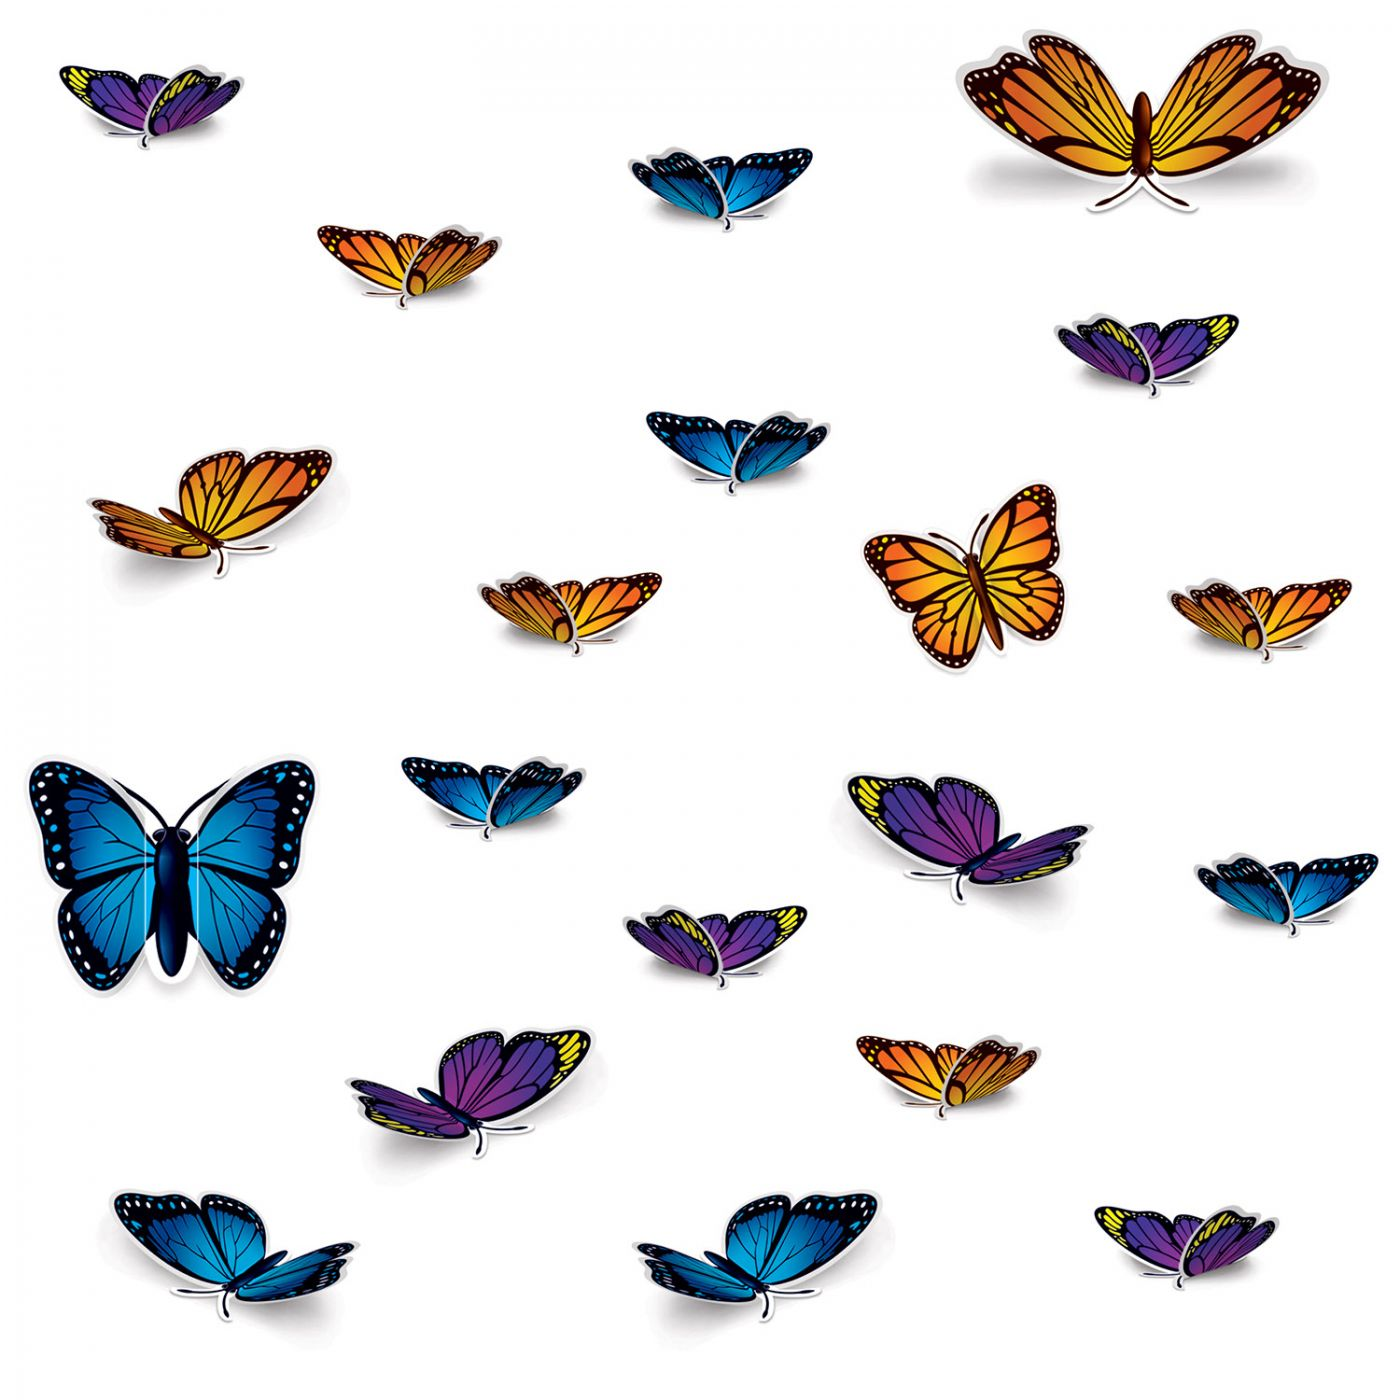 Image of Butterfly Cutouts